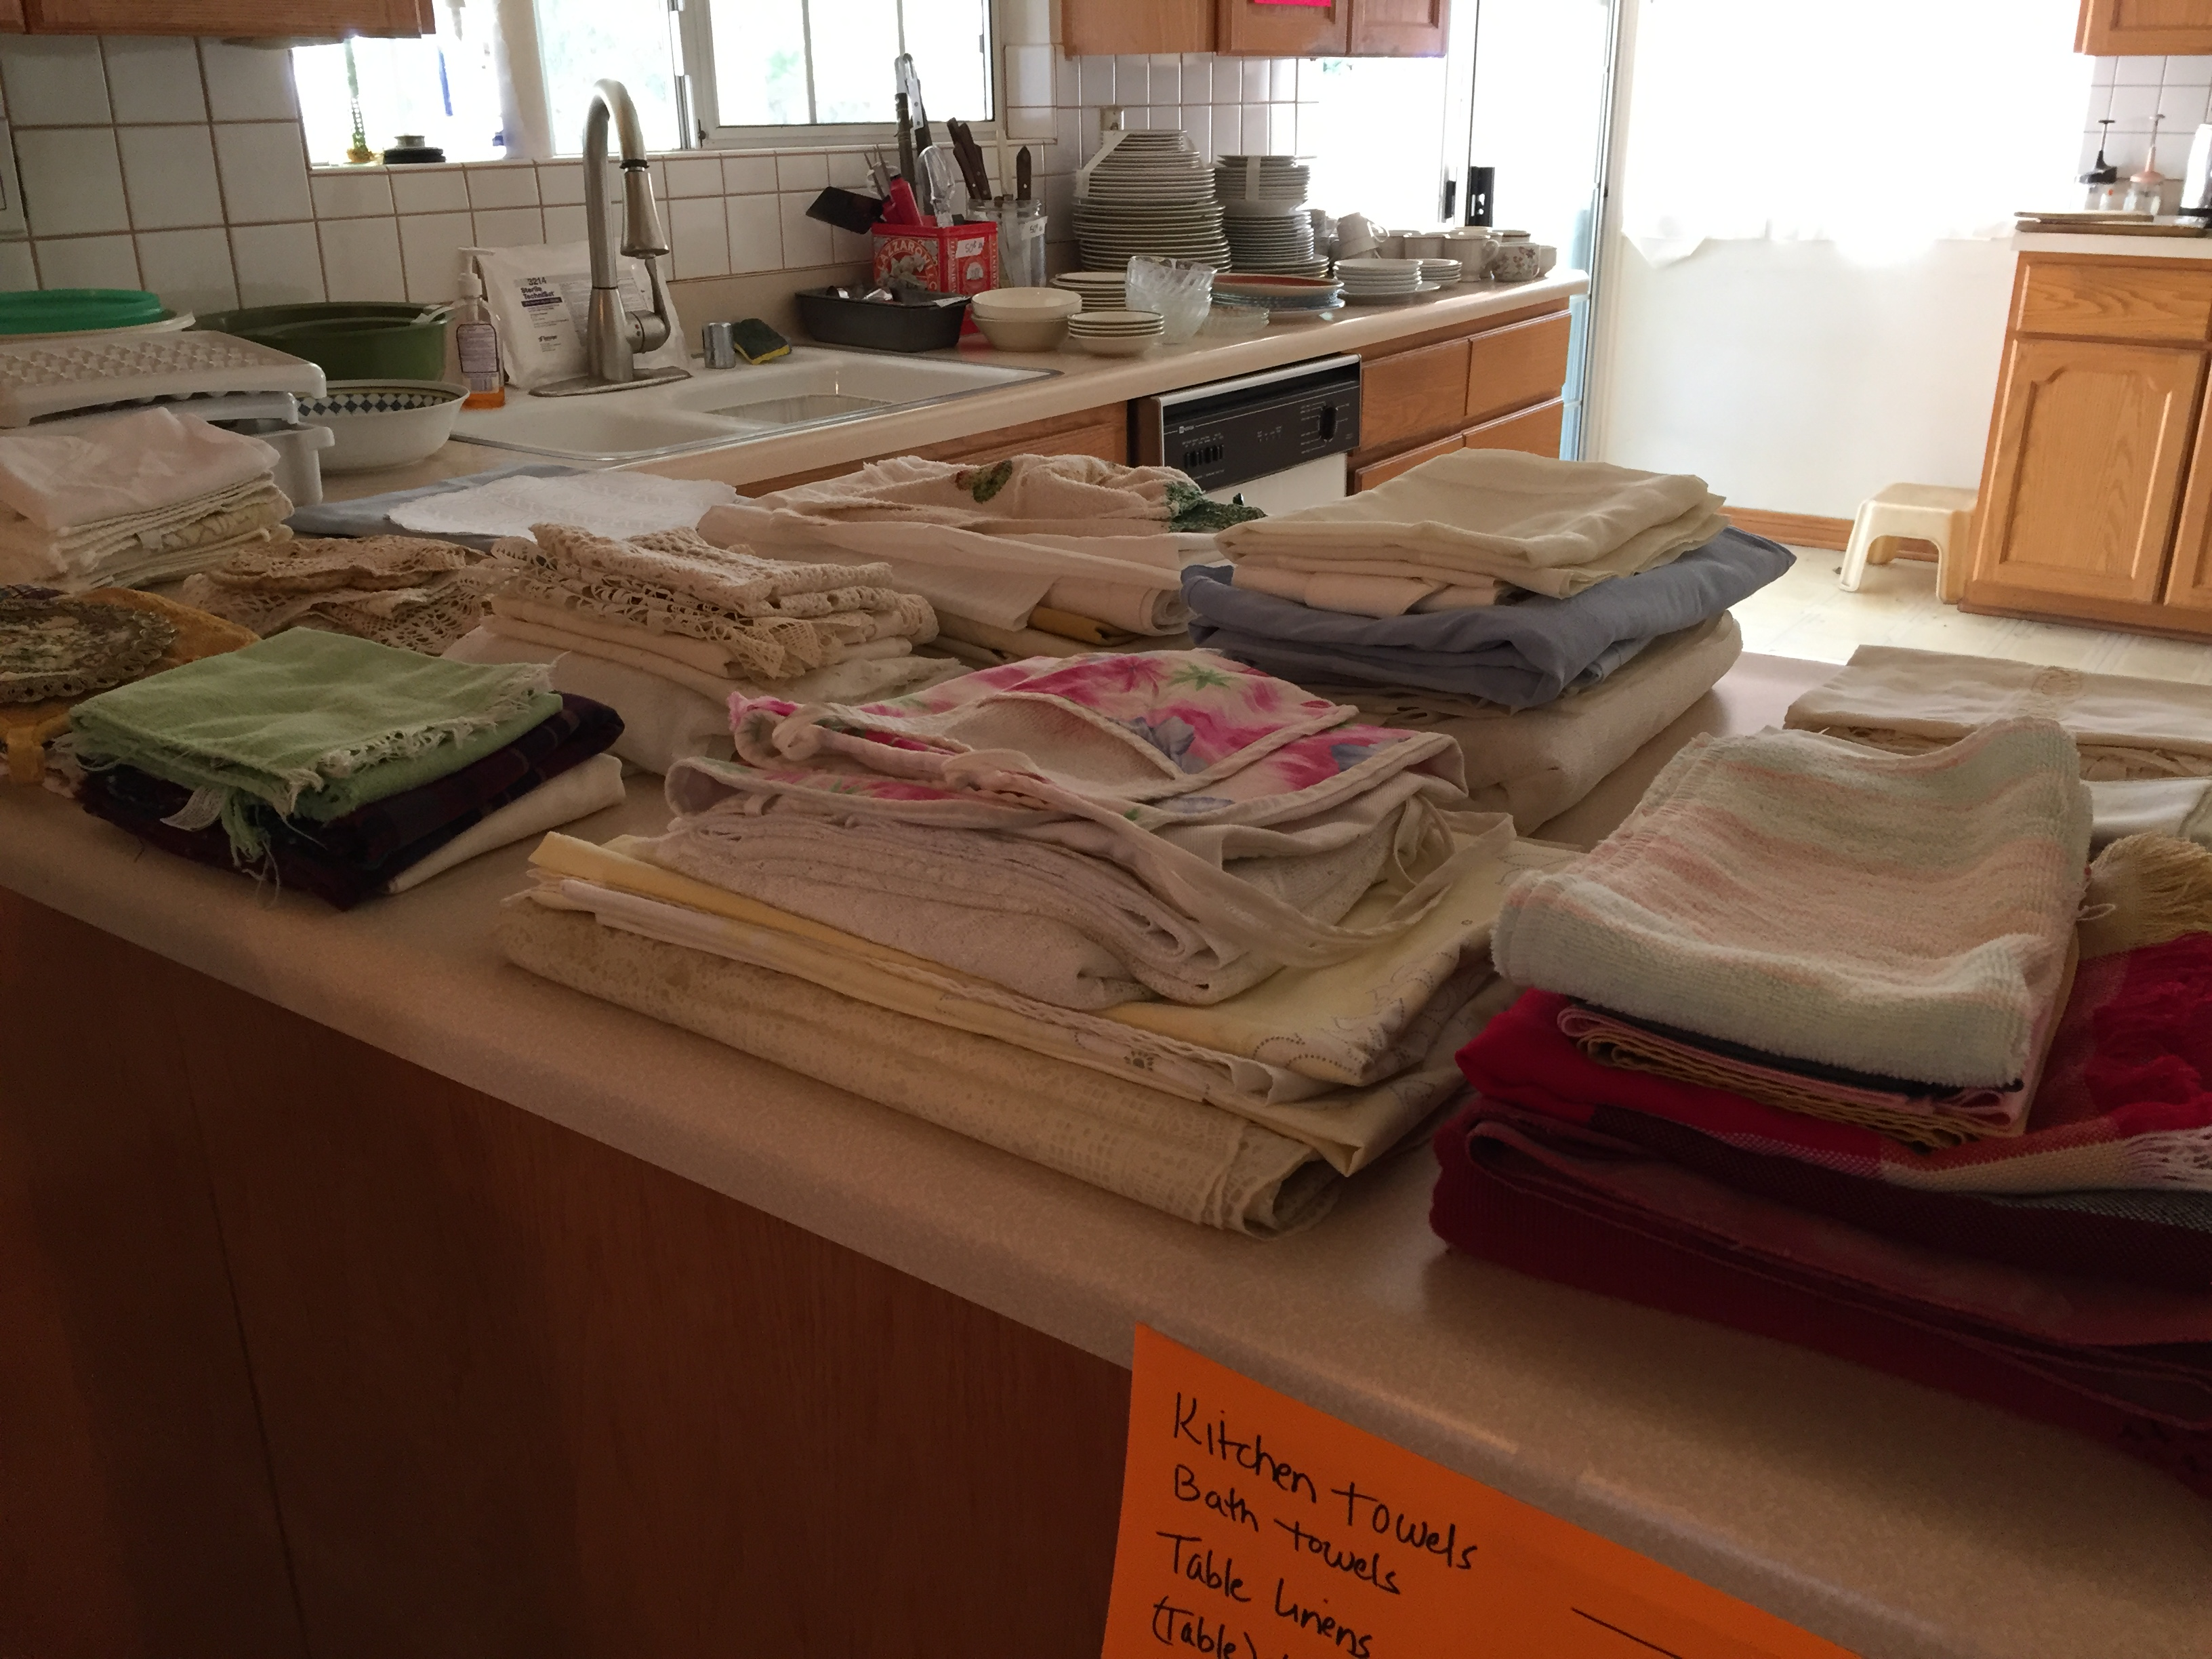 kitchen and table linen display